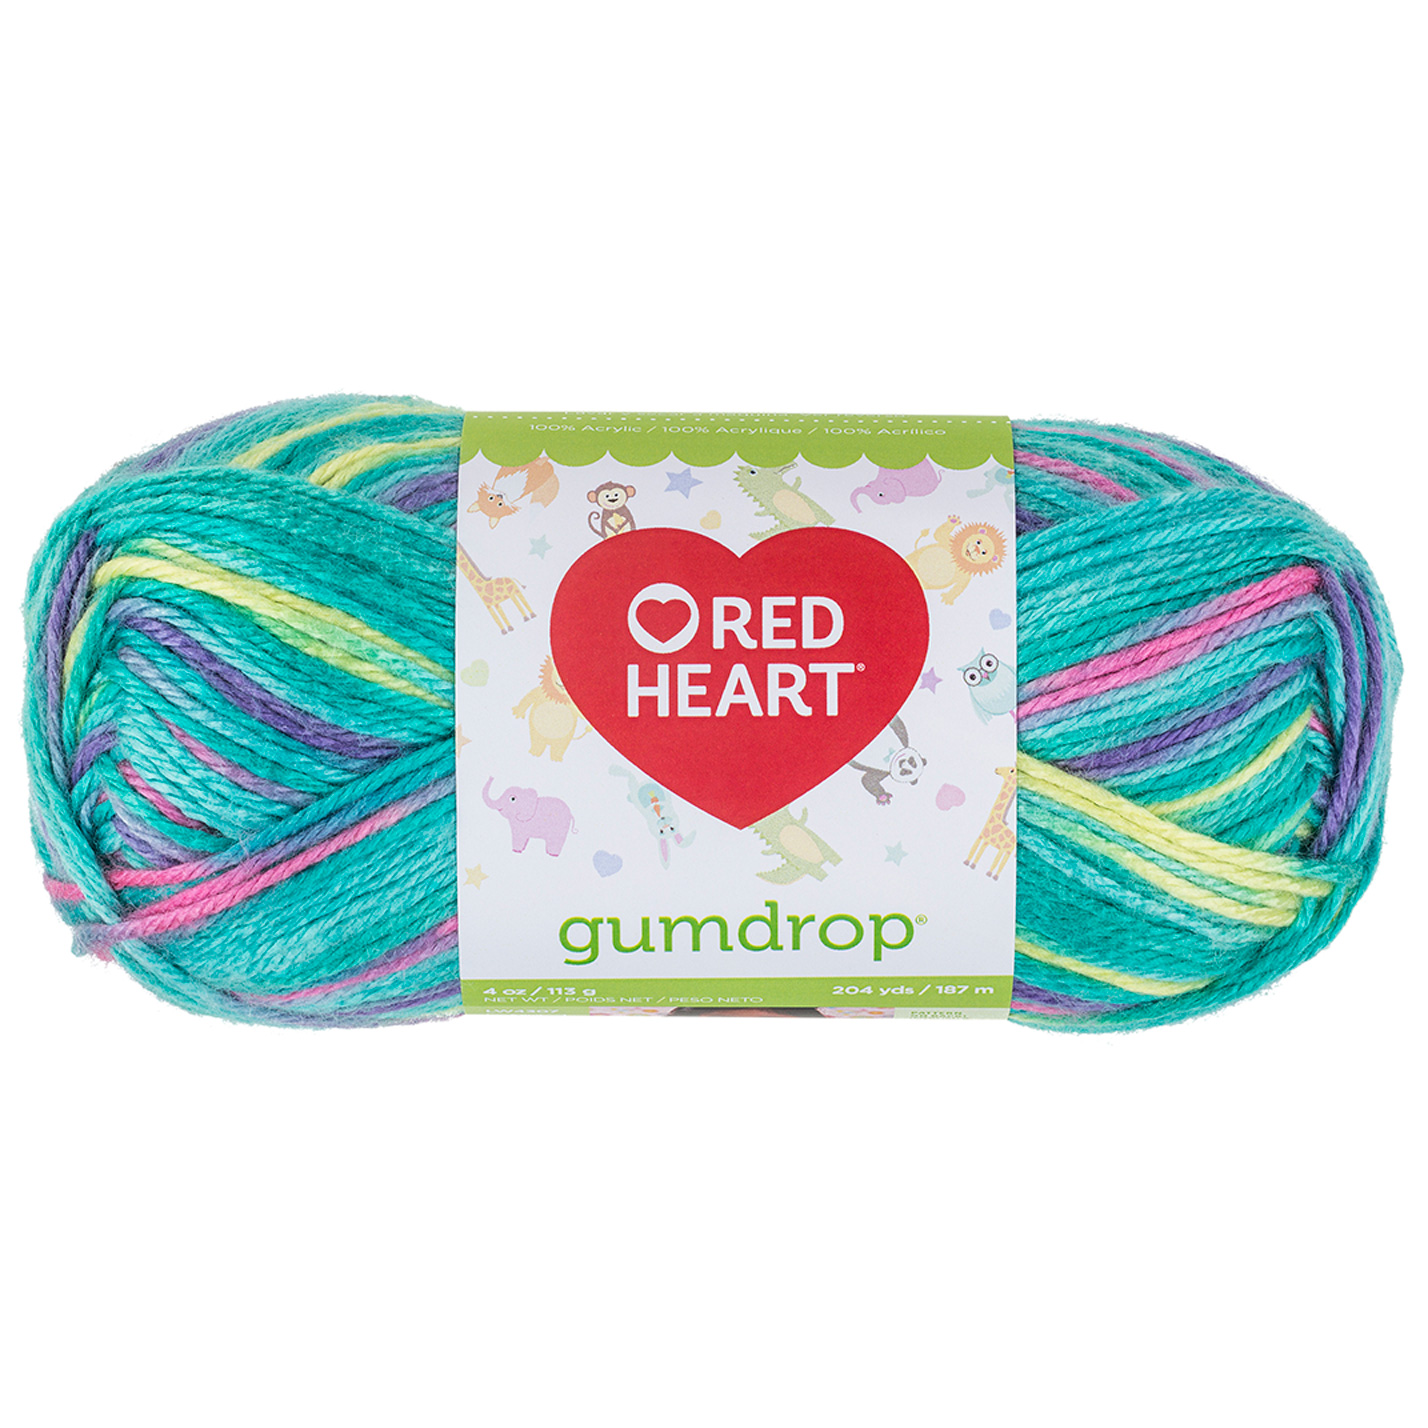 Red Heart Gumdrop Yarn 501 Smoothie by Coats & Clark in USA